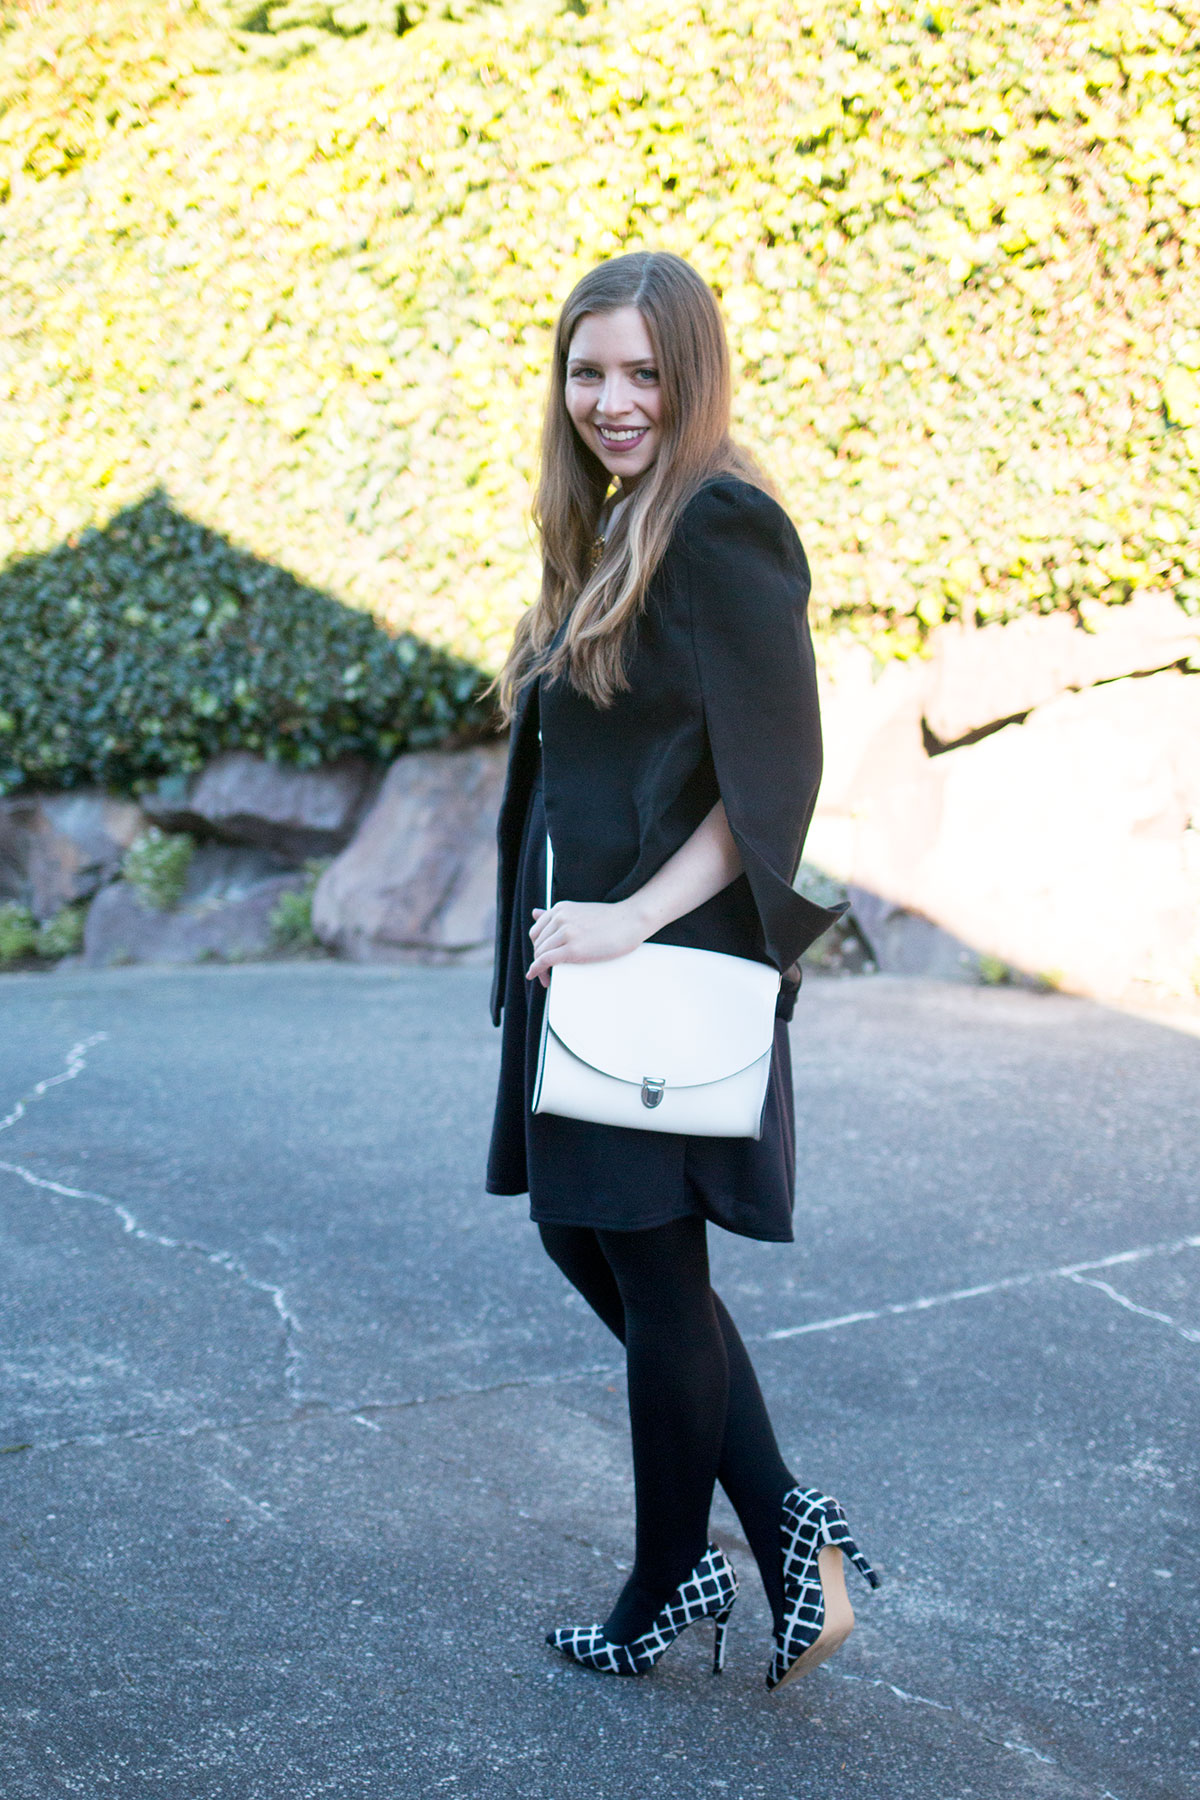 White Cambridge Satchel Company Crossbody with Black Outfit // hellorigby.com seattle fashion blog